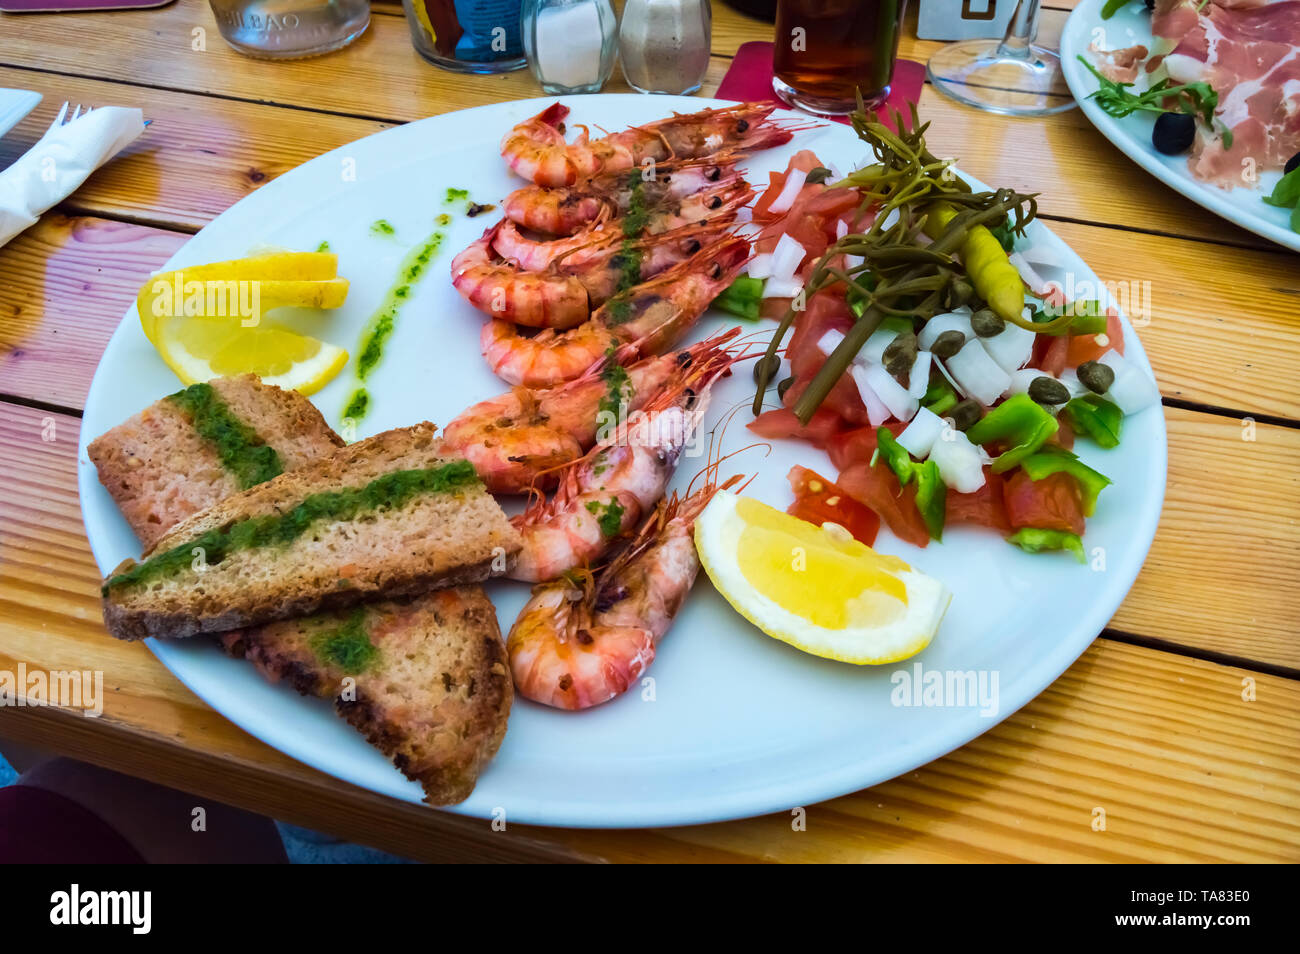 Plate of roasted prawns with slices of bread in the middle and tomatoes on a wooden table - Stock Image